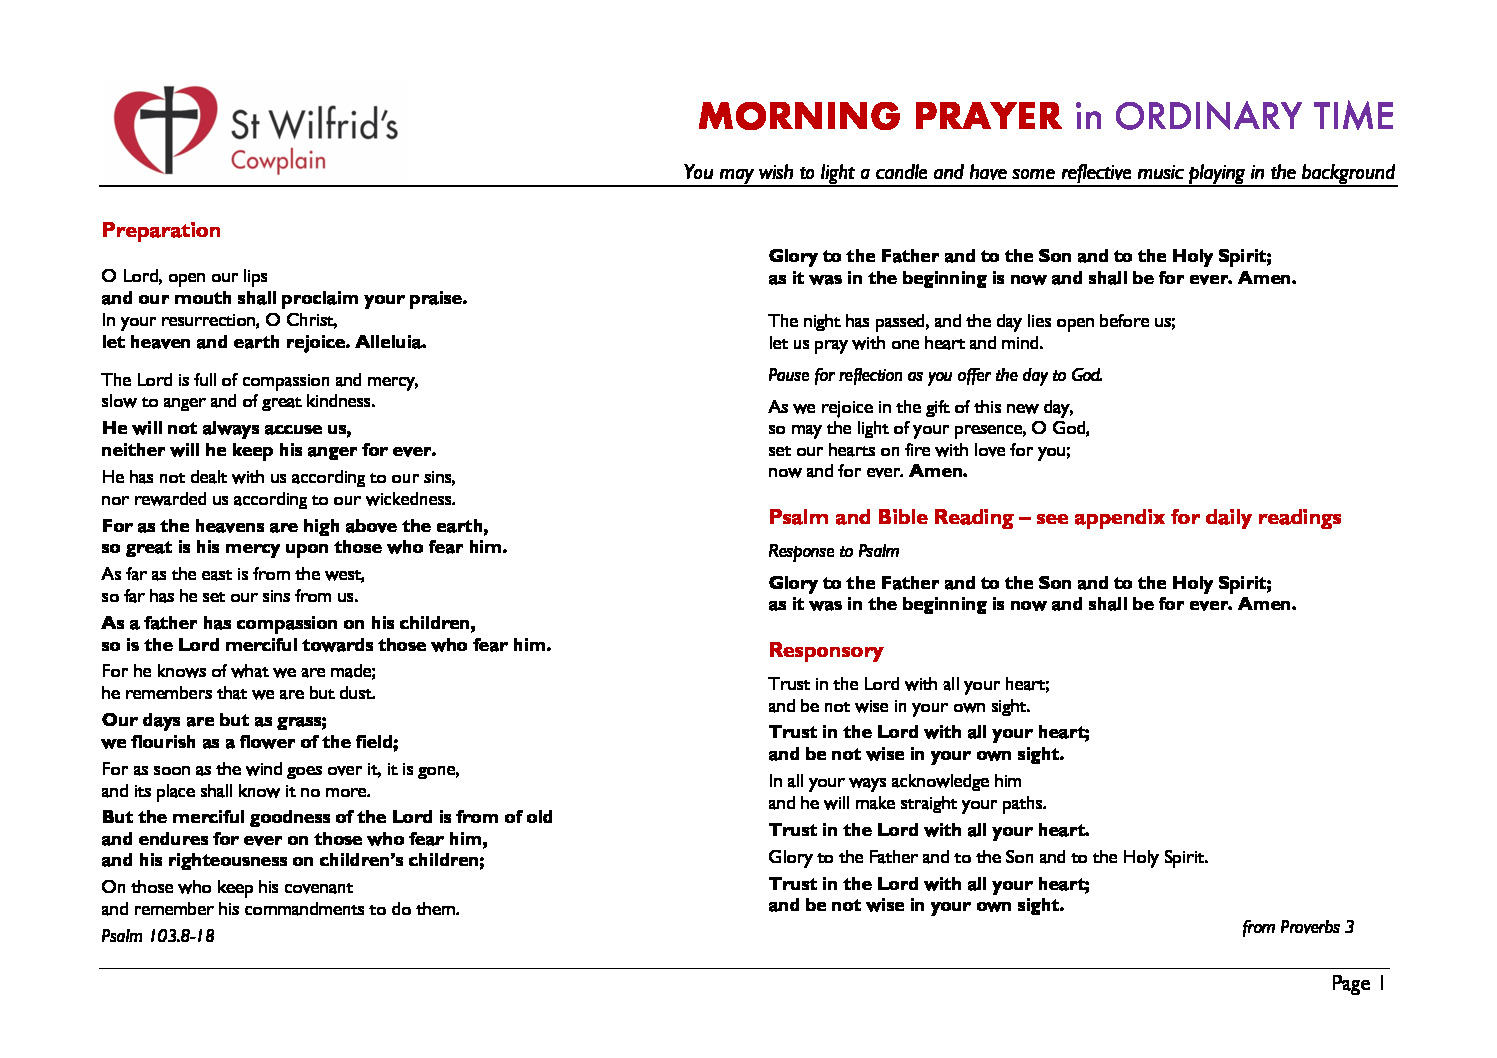 thumbnail of Morning Prayer ordinary time